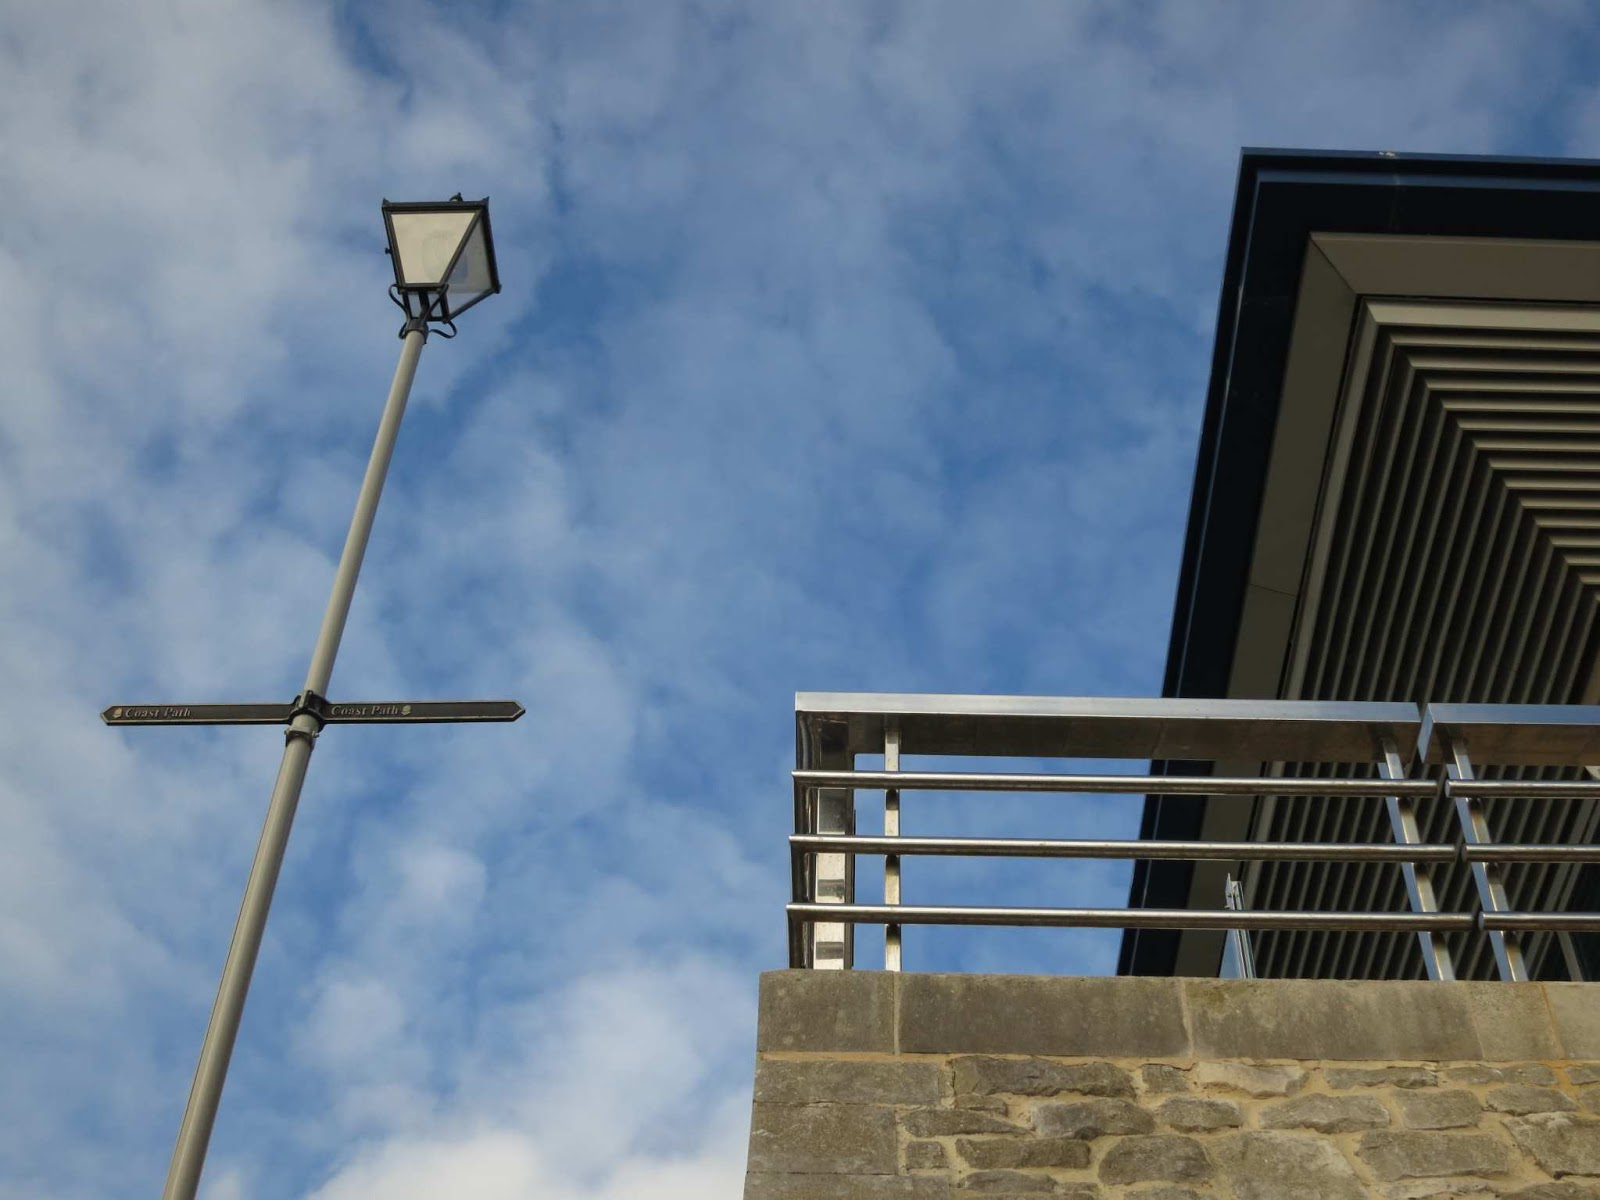 Lampost on left, rail and roof on right, sky behind.